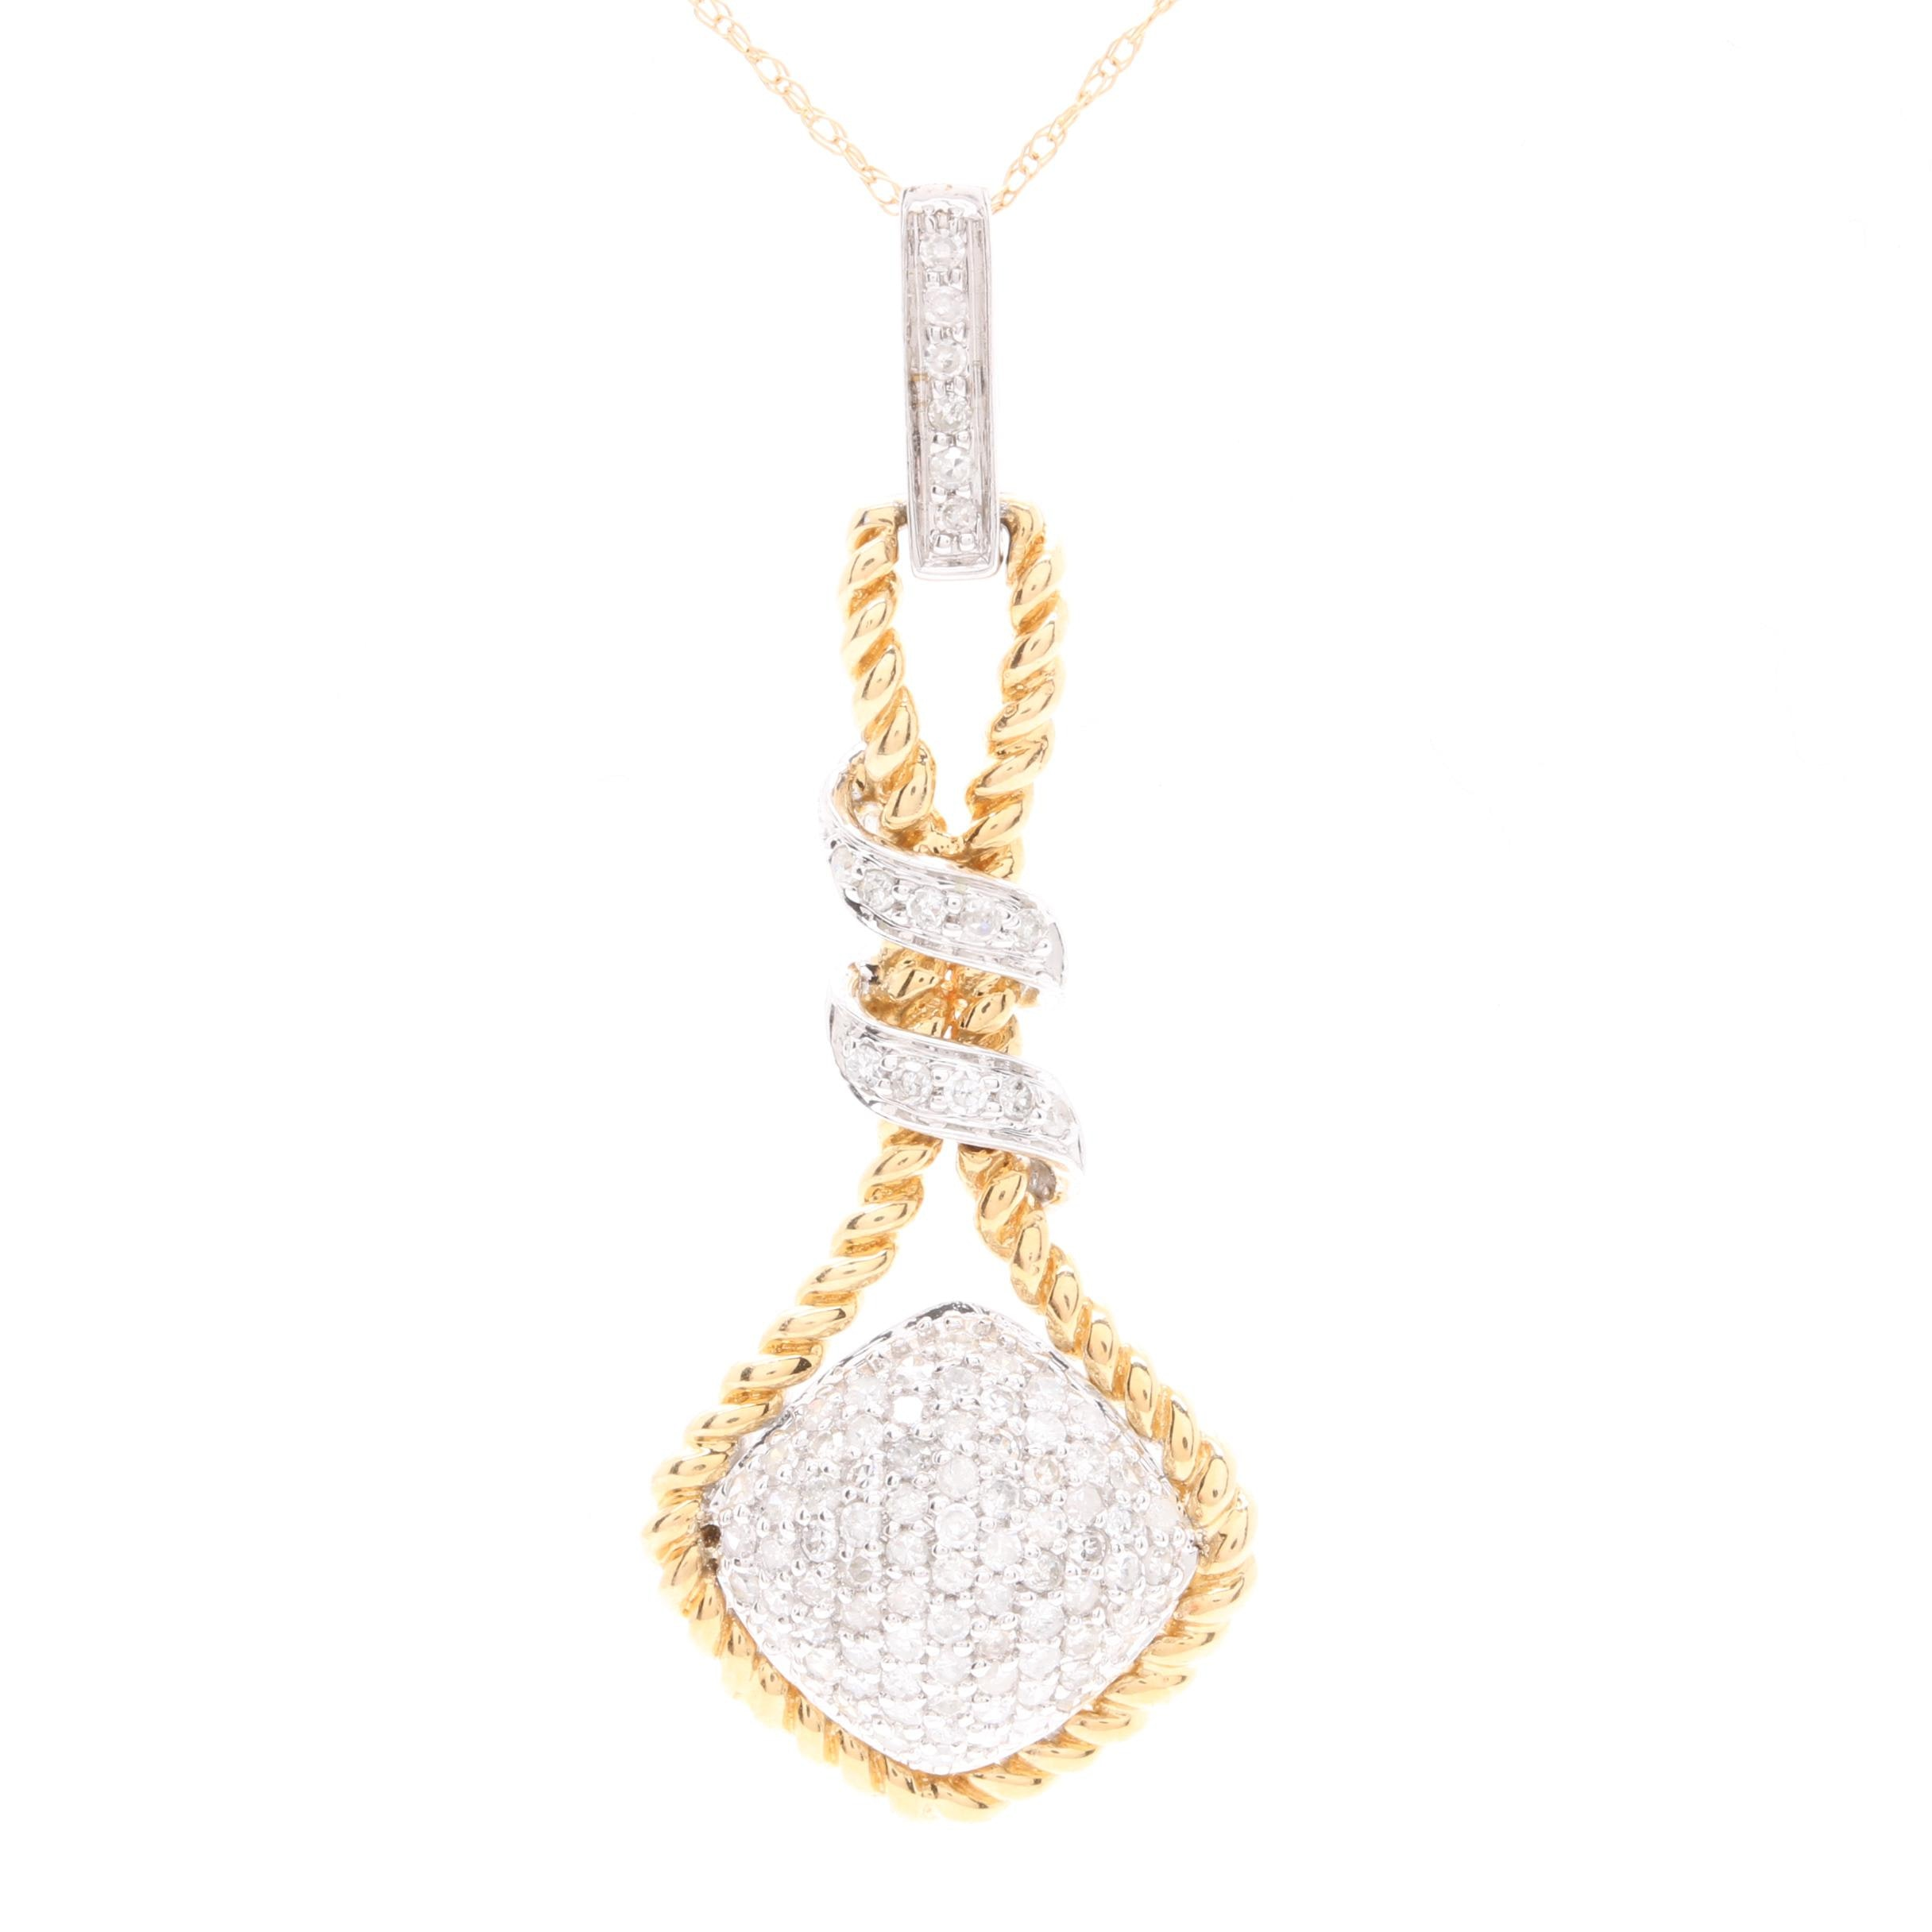 14K Yellow Gold Diamond Pendant with 14K White Gold Accents